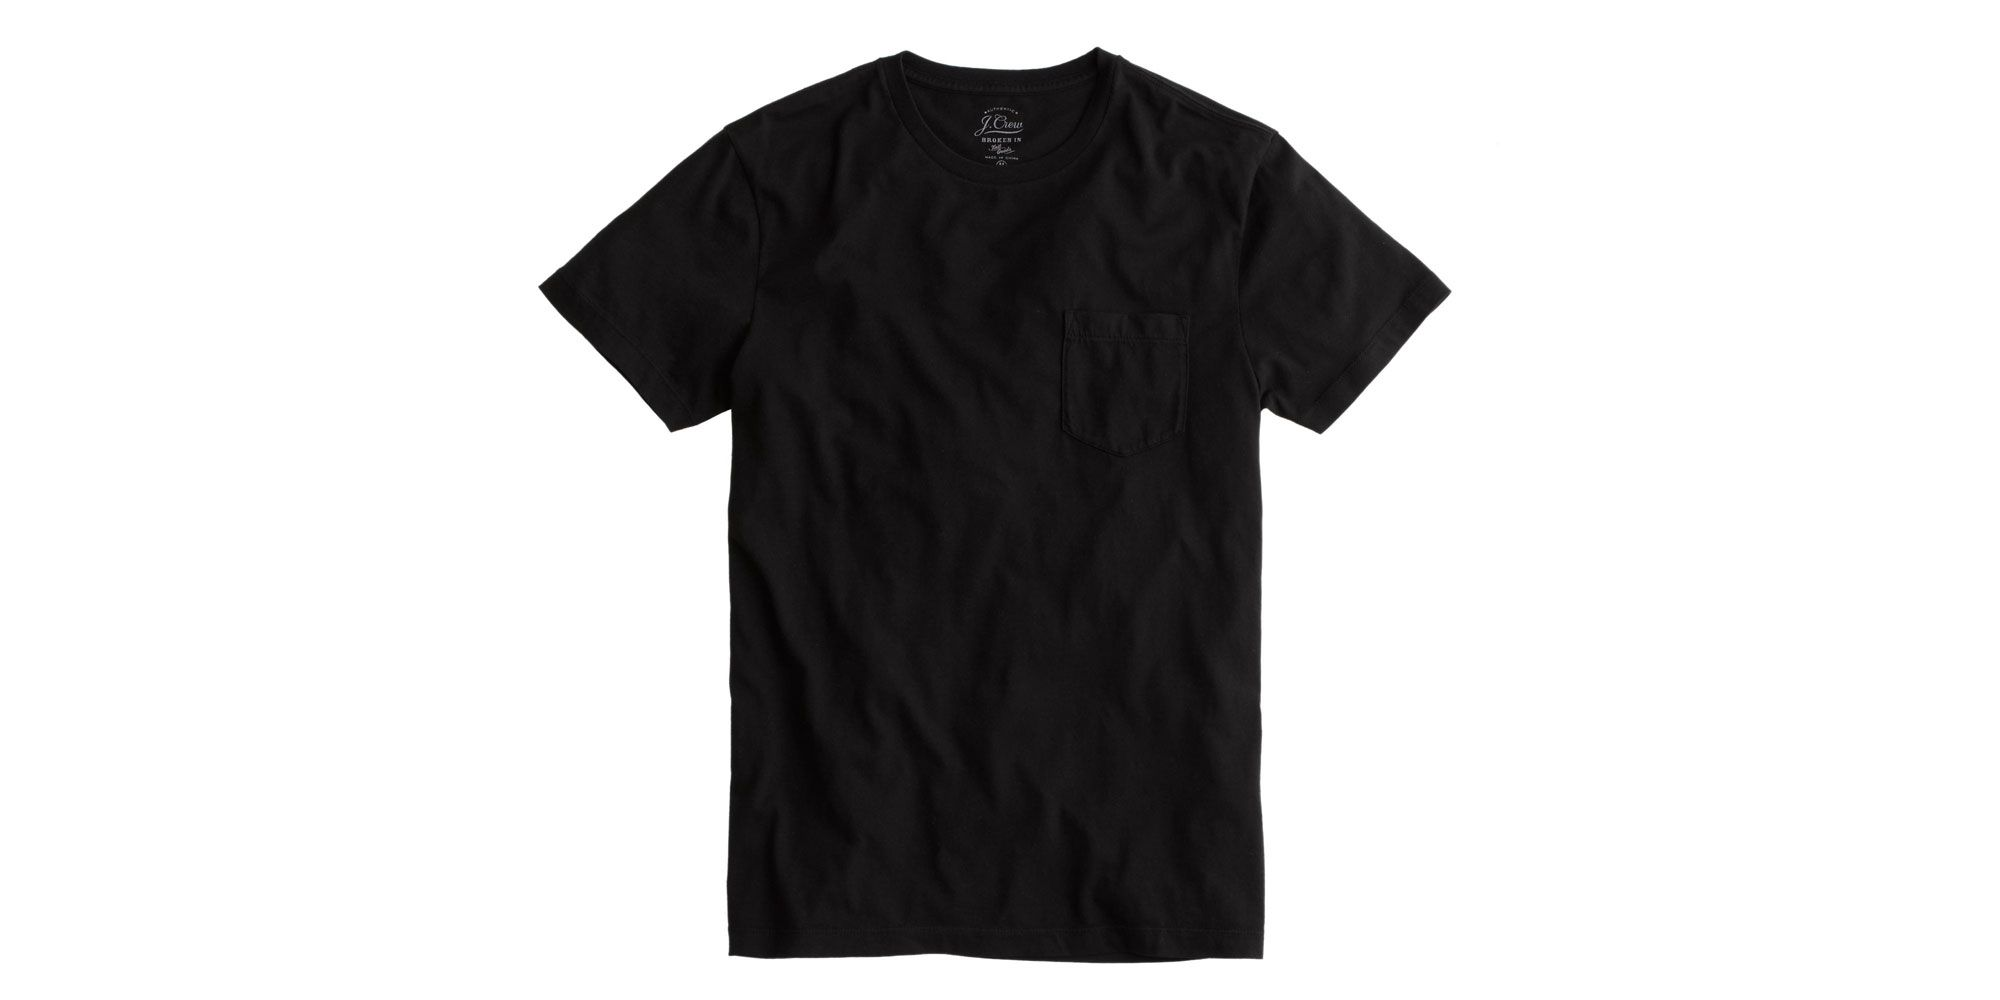 c5a8989e69a73 The Best Black T-Shirt for Men According to Nick Wooster